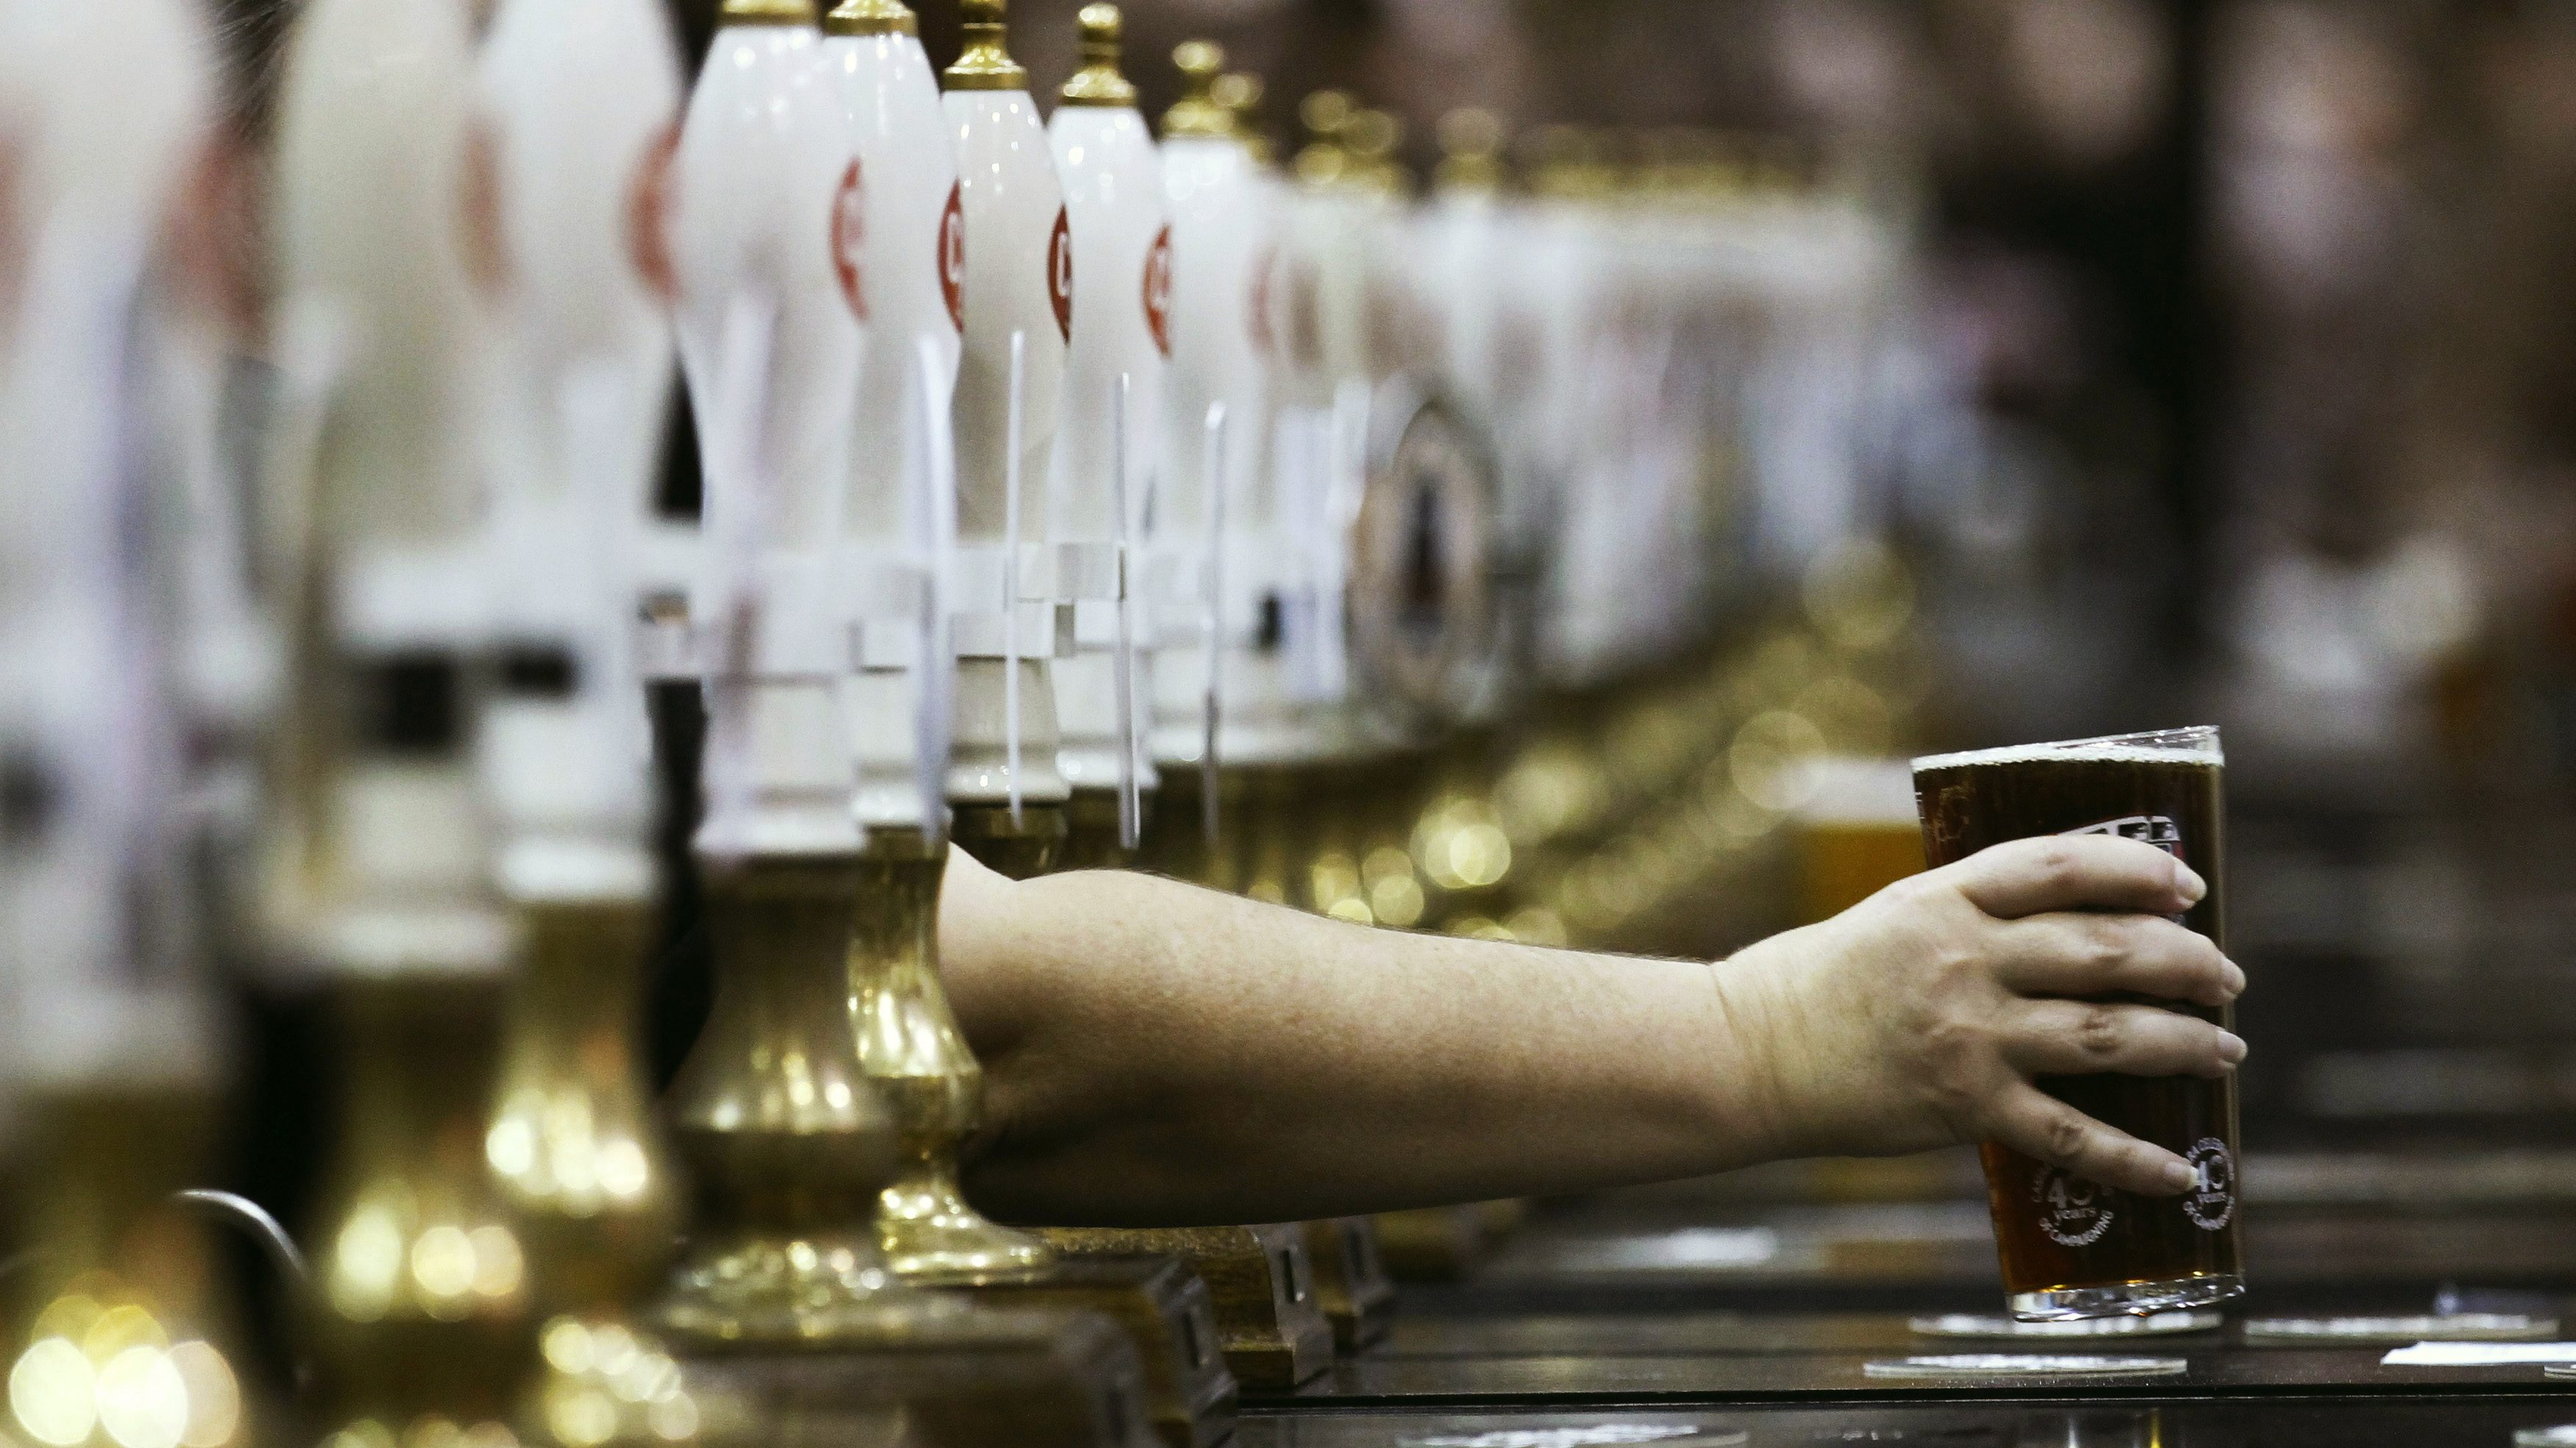 A pint of beer is served through rows of beer pumps at the Campaign For Real Ale Great British Beer Festival at Earls Court in London August 2, 2011. British pubs -- closing at record rates in a harsh economic climate -- could be saved by reviving traditional games like skittles and darts, according to a report on Tuesday. Such games have disappeared from many pubs in recent years in favour of gaming machines which charge customers to play, and from which landords can take a cut, the report said.  To match Reuters Life! BRITAIN-PUBS/